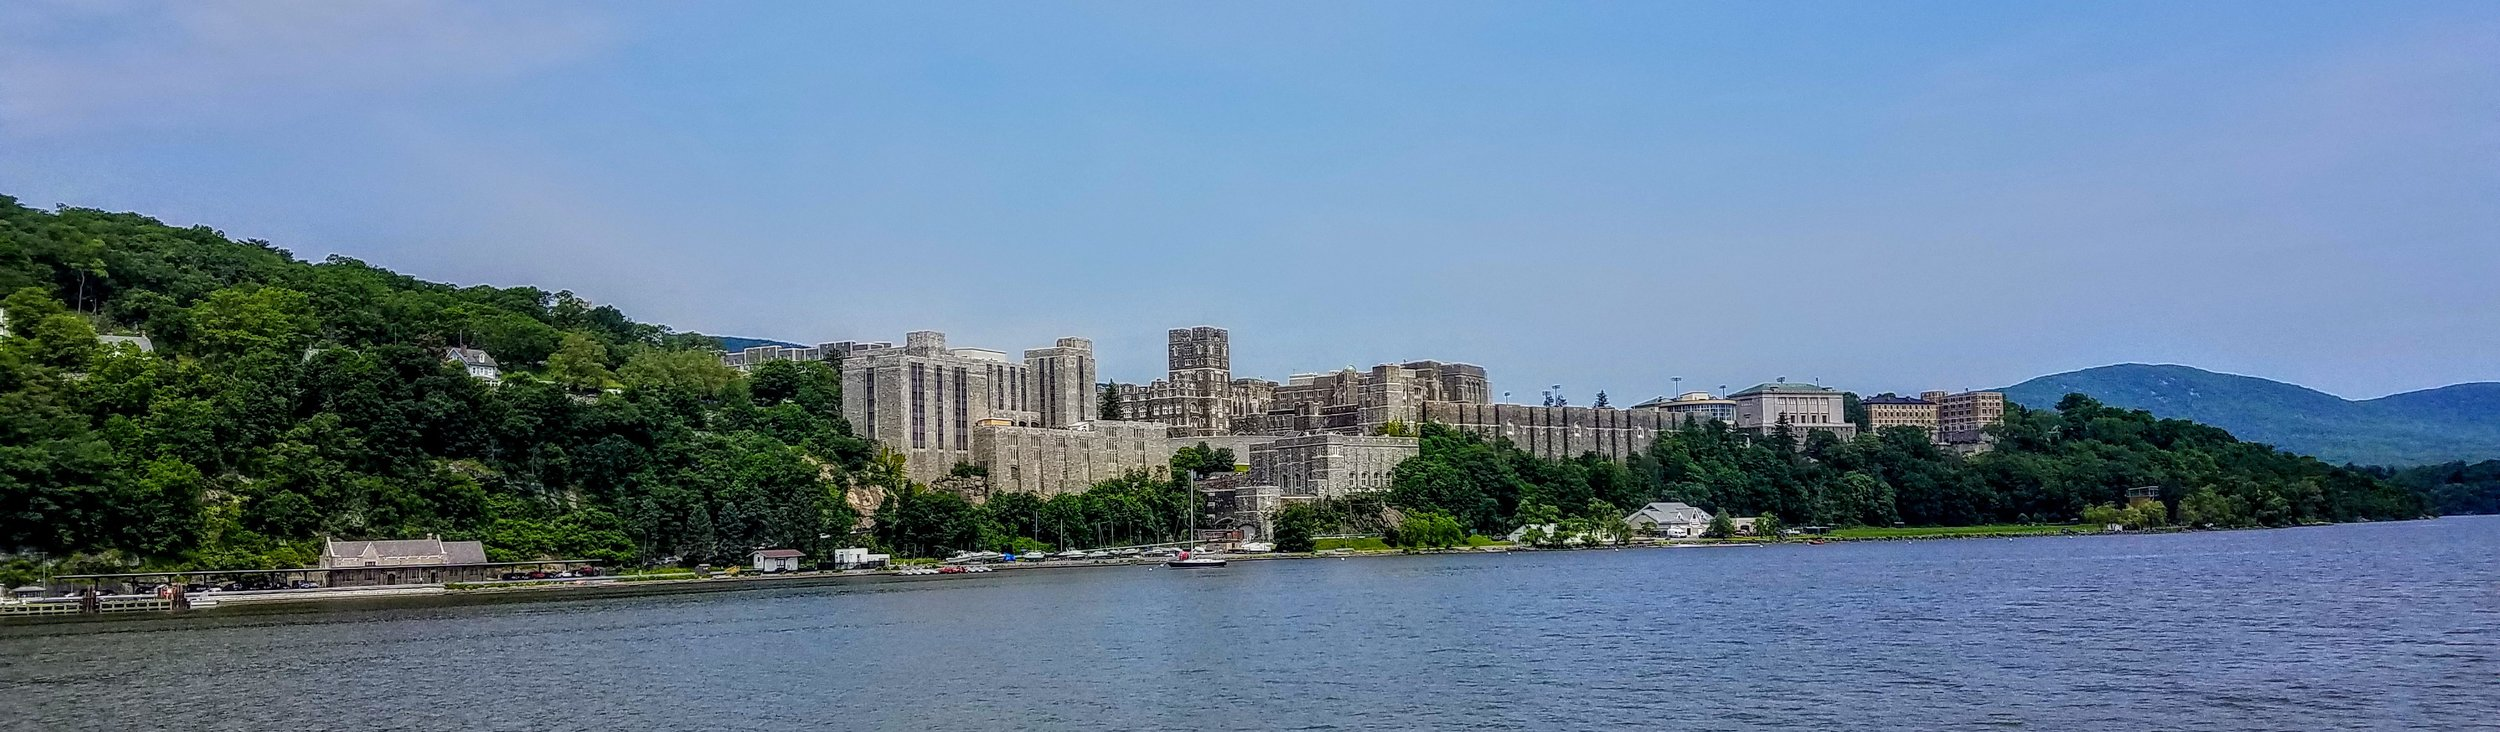 West Point Academy from the water